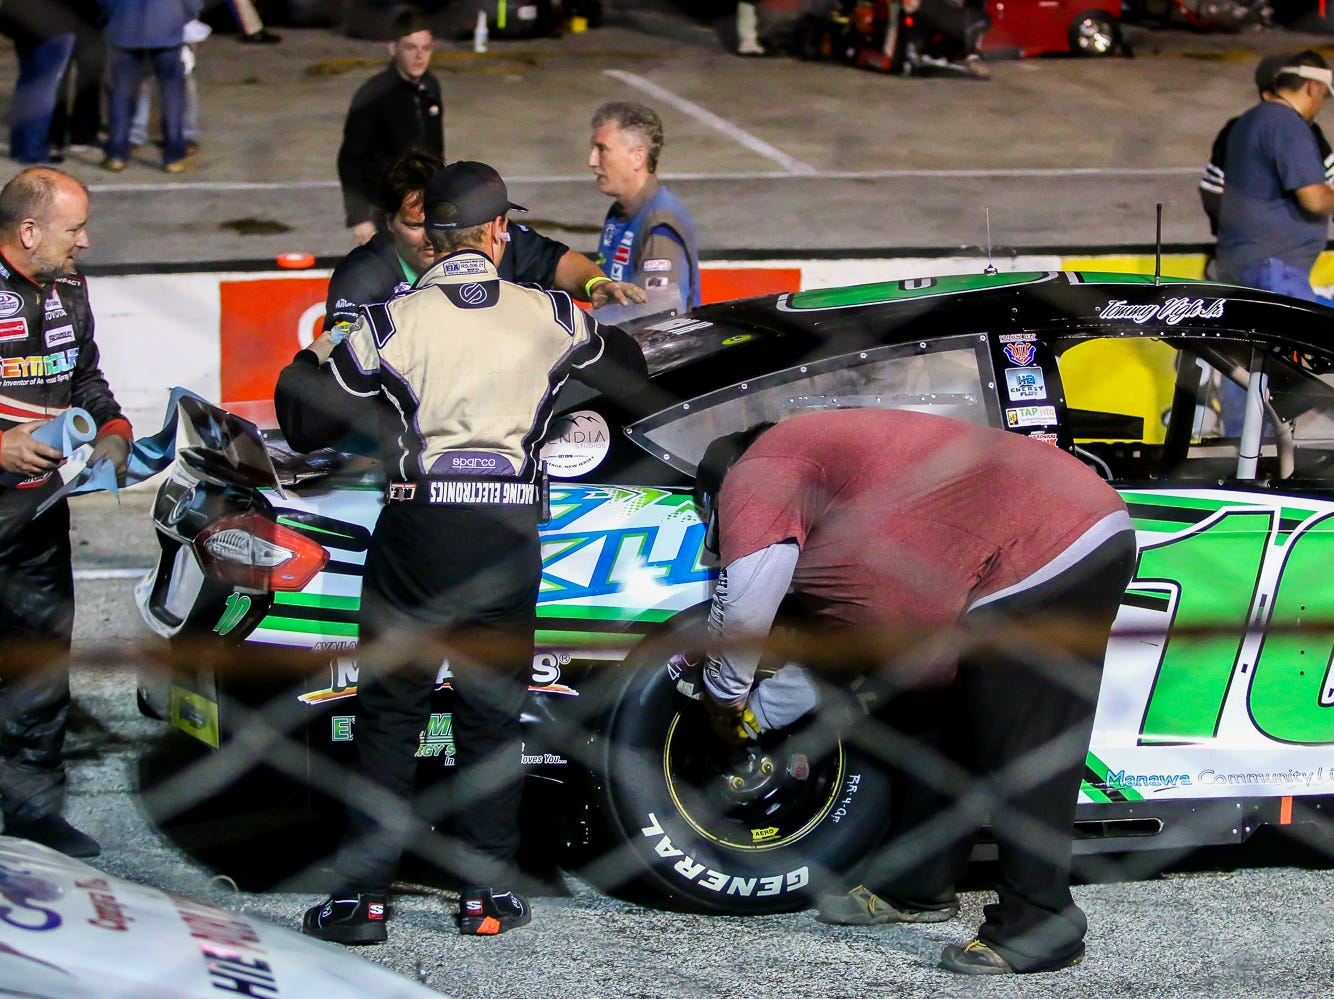 Crew members make sure the car of Tommy Vigh Jr. (10) is ready before the start of the ARCA Pensacola 200 race presented by Inspectra Thermal Solutions on Saturday, March 9, 2019, at Five Flags Speedway. Michael Self, of Salt Lake City, won the race.